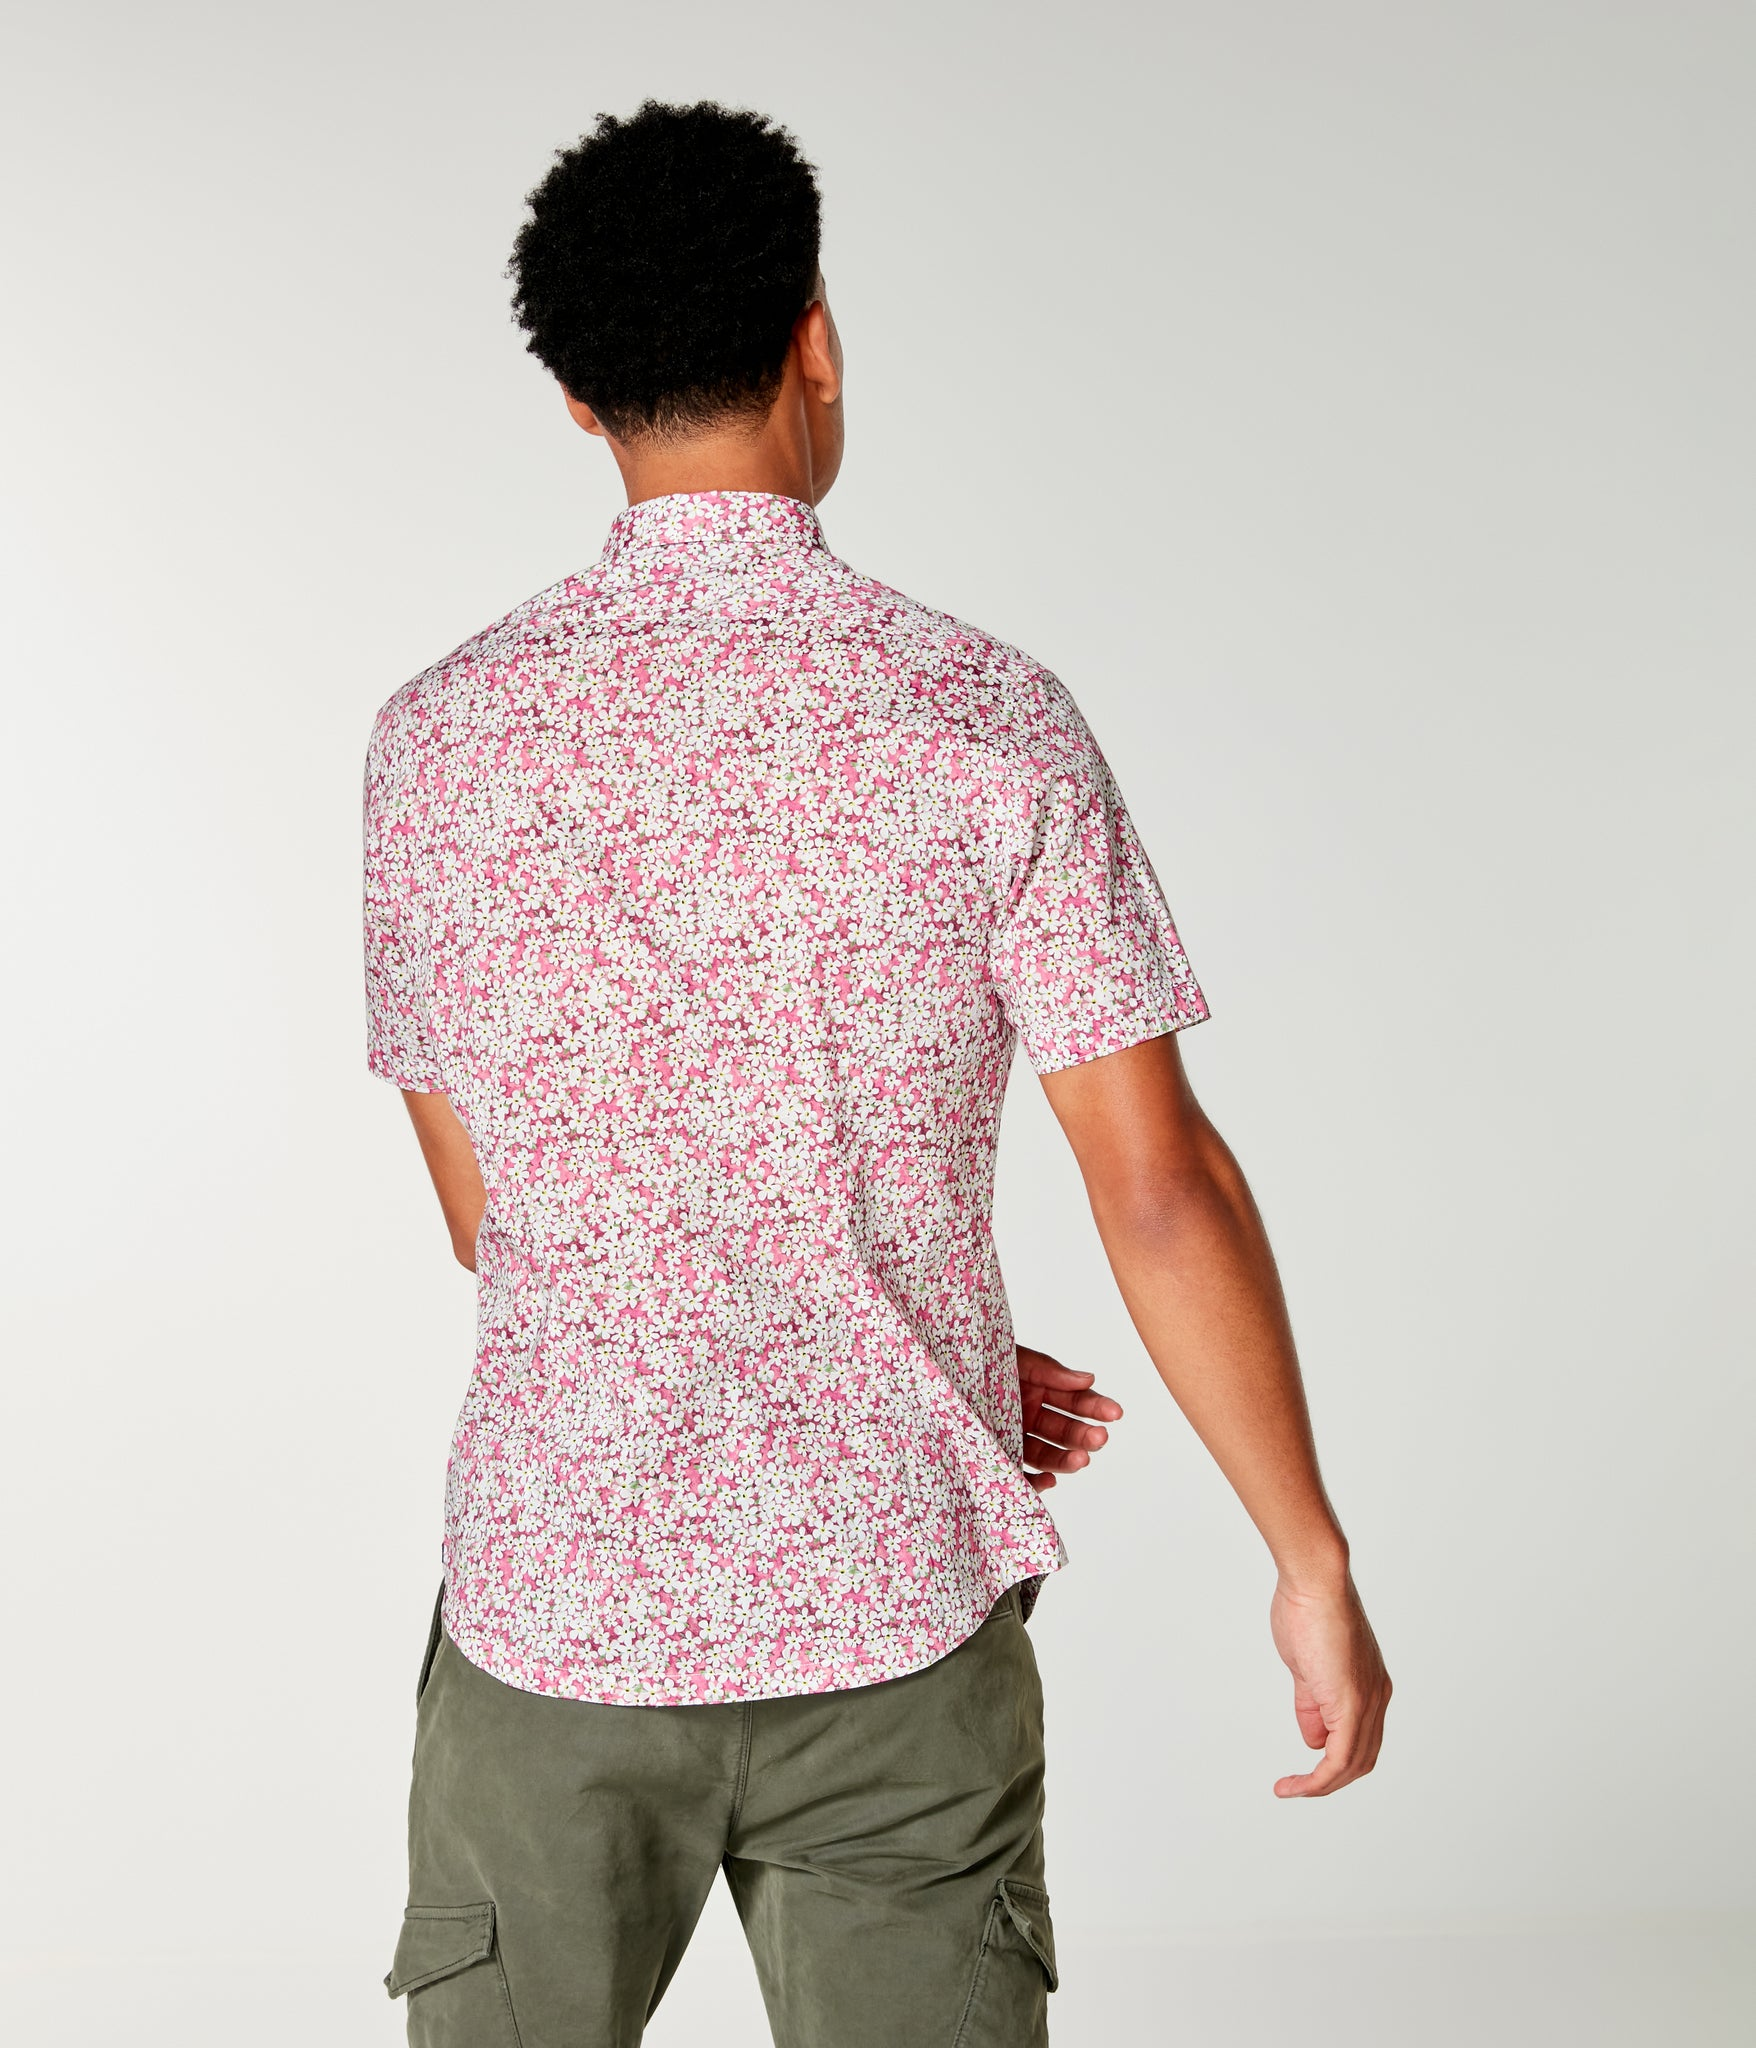 Woven On-Point Shirt - Jazzy Petal Liberty Pond